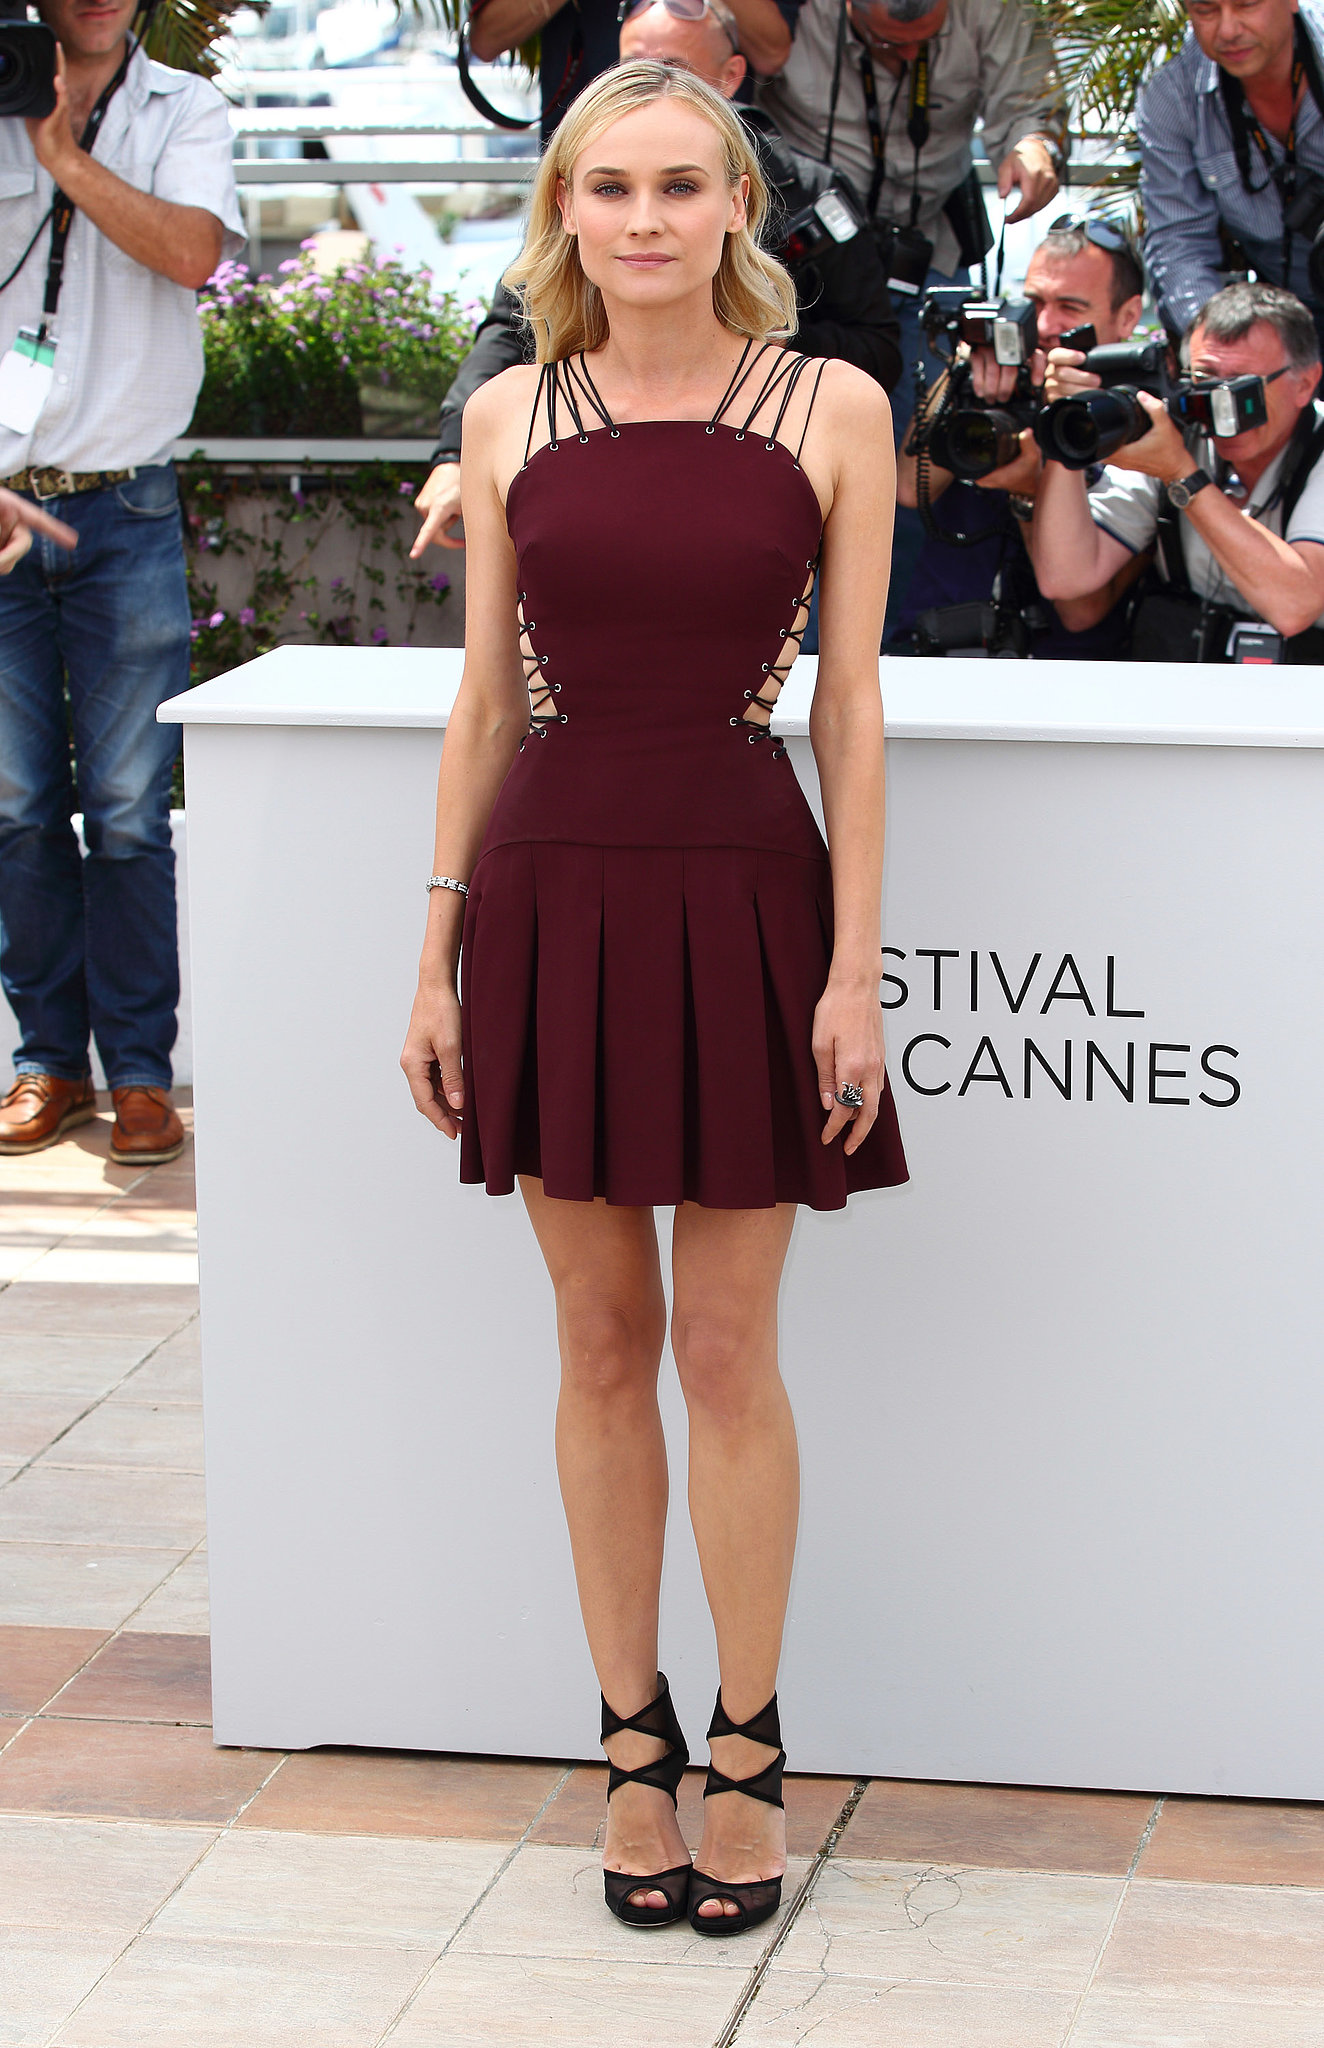 At the Cannes 2012 jury photocall, Diane wowed in a lace-up Versus pleated dress, paired with Jimmy Choo strappy platform sandals.